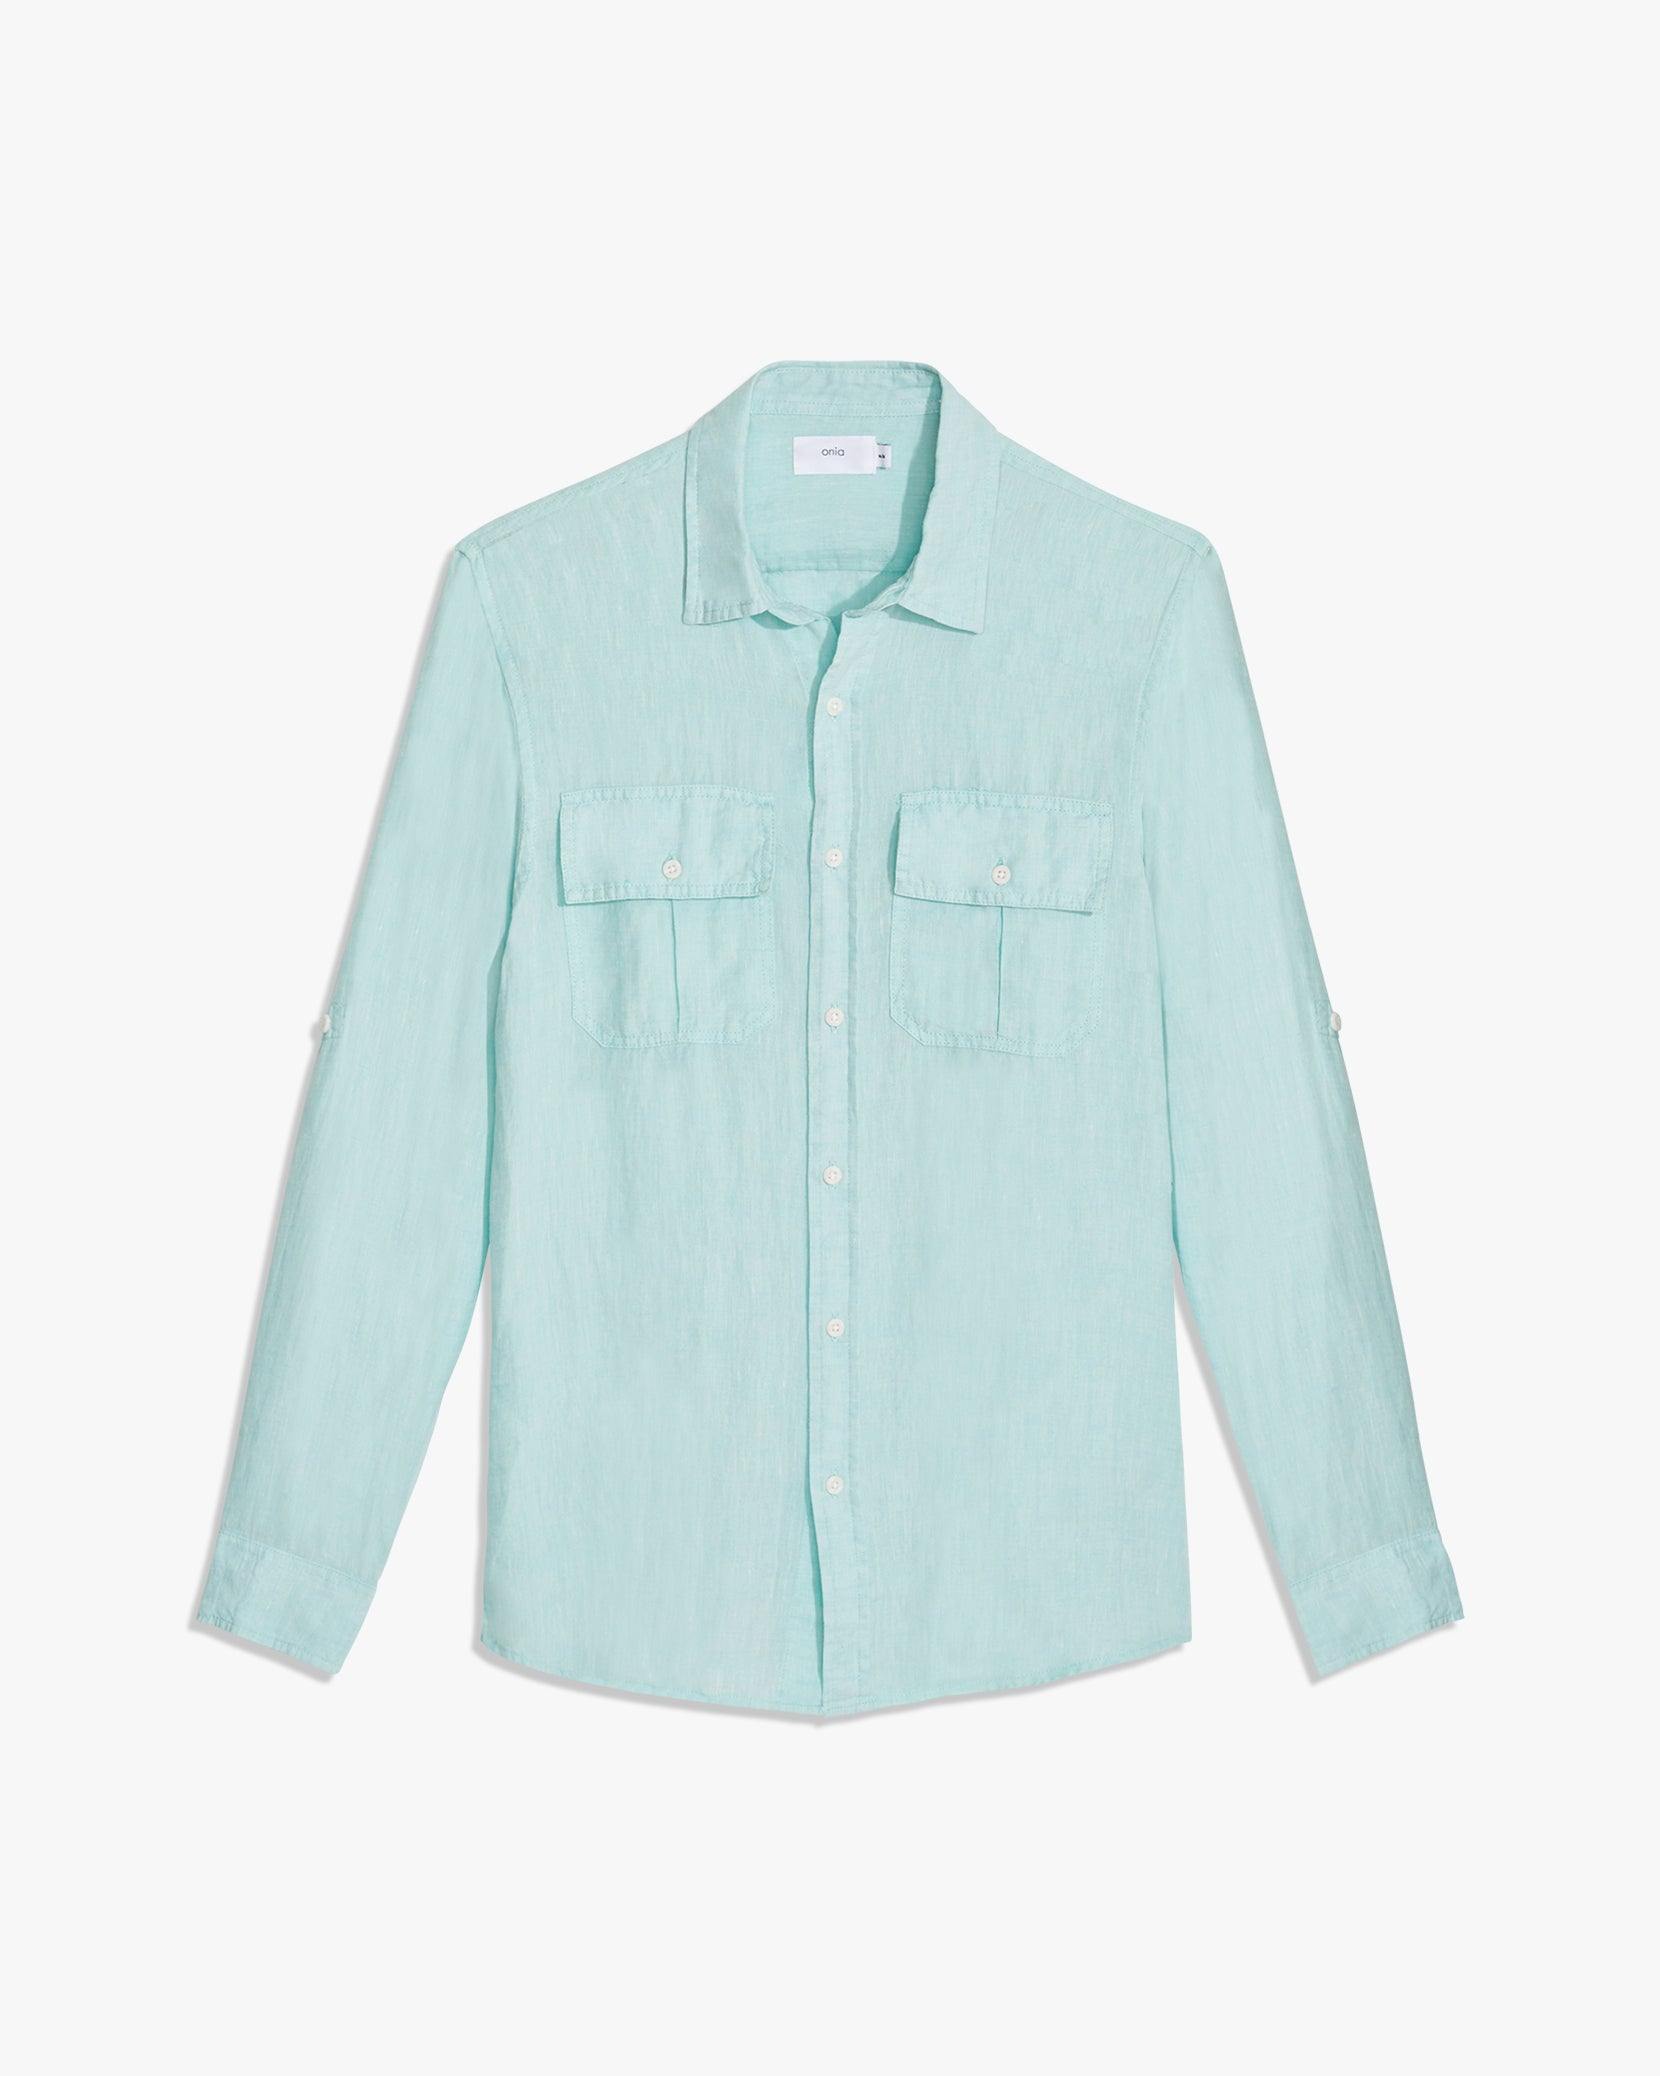 Garret Linen Shirt in Reef Blue - 9 - Onia